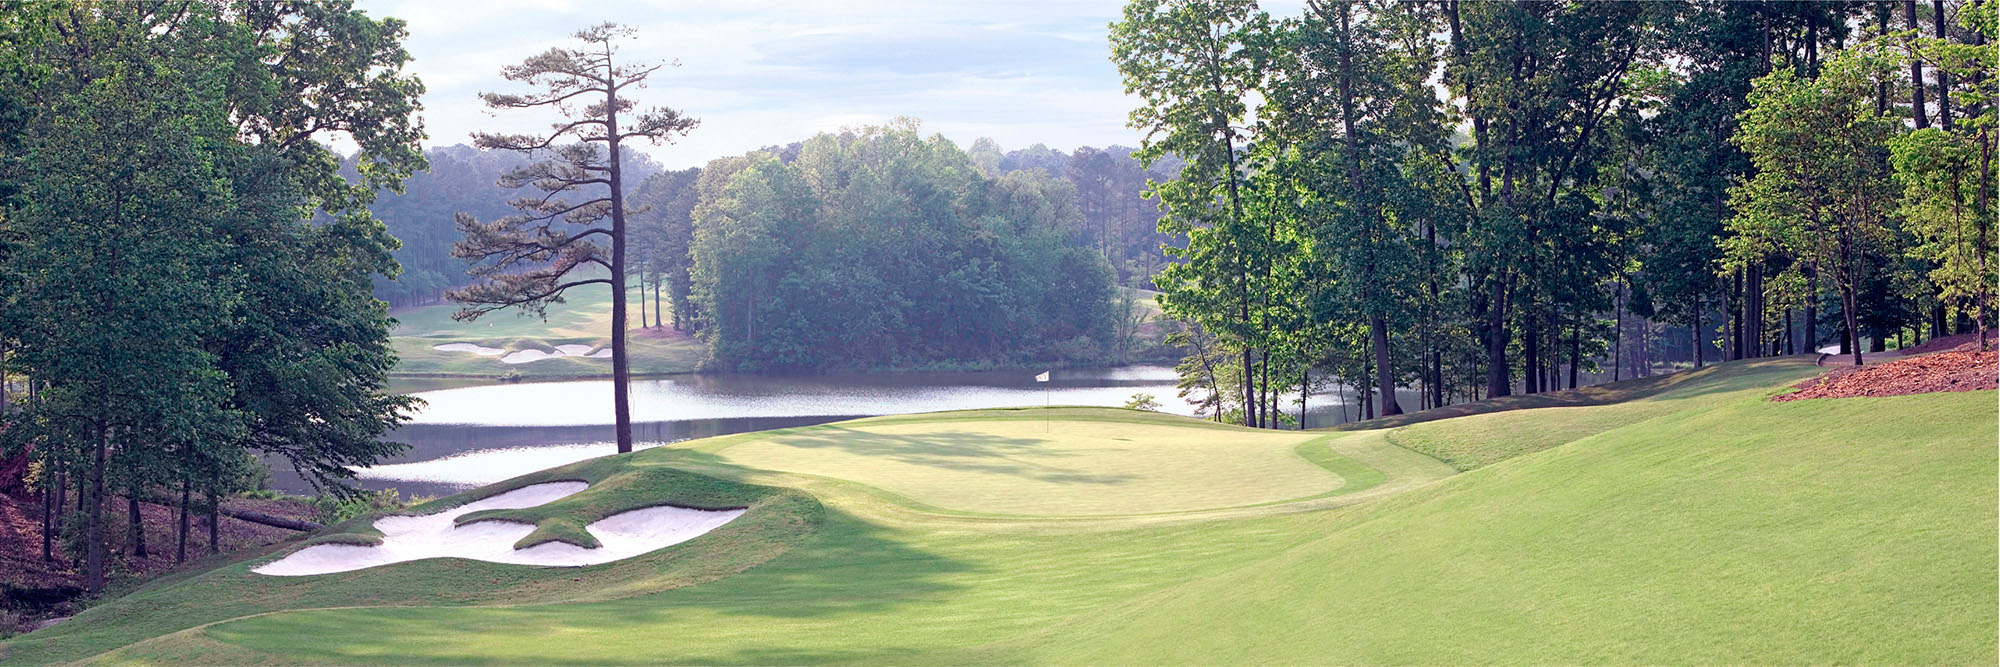 Golf Course Image - White Columns Country Club No. 8